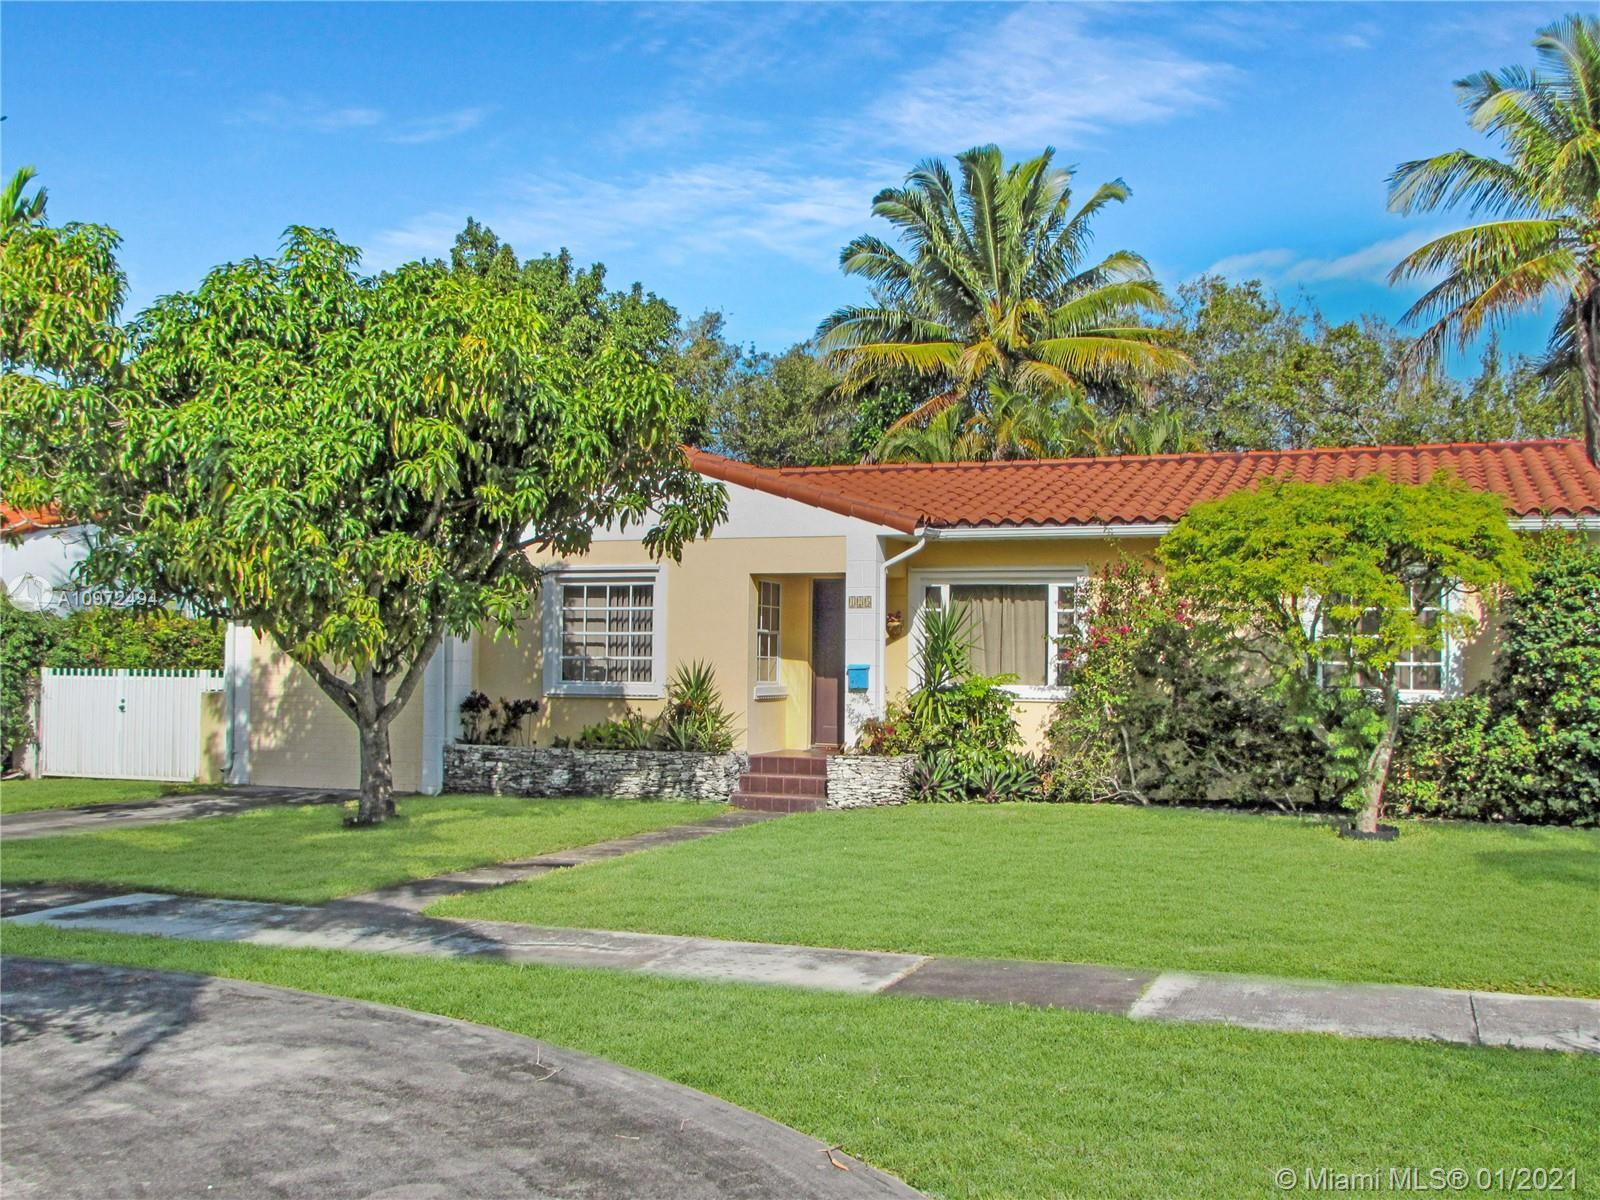 Cozy three bedroom and two bathroom home with a great NE location in Miami Shores. Located in a dead